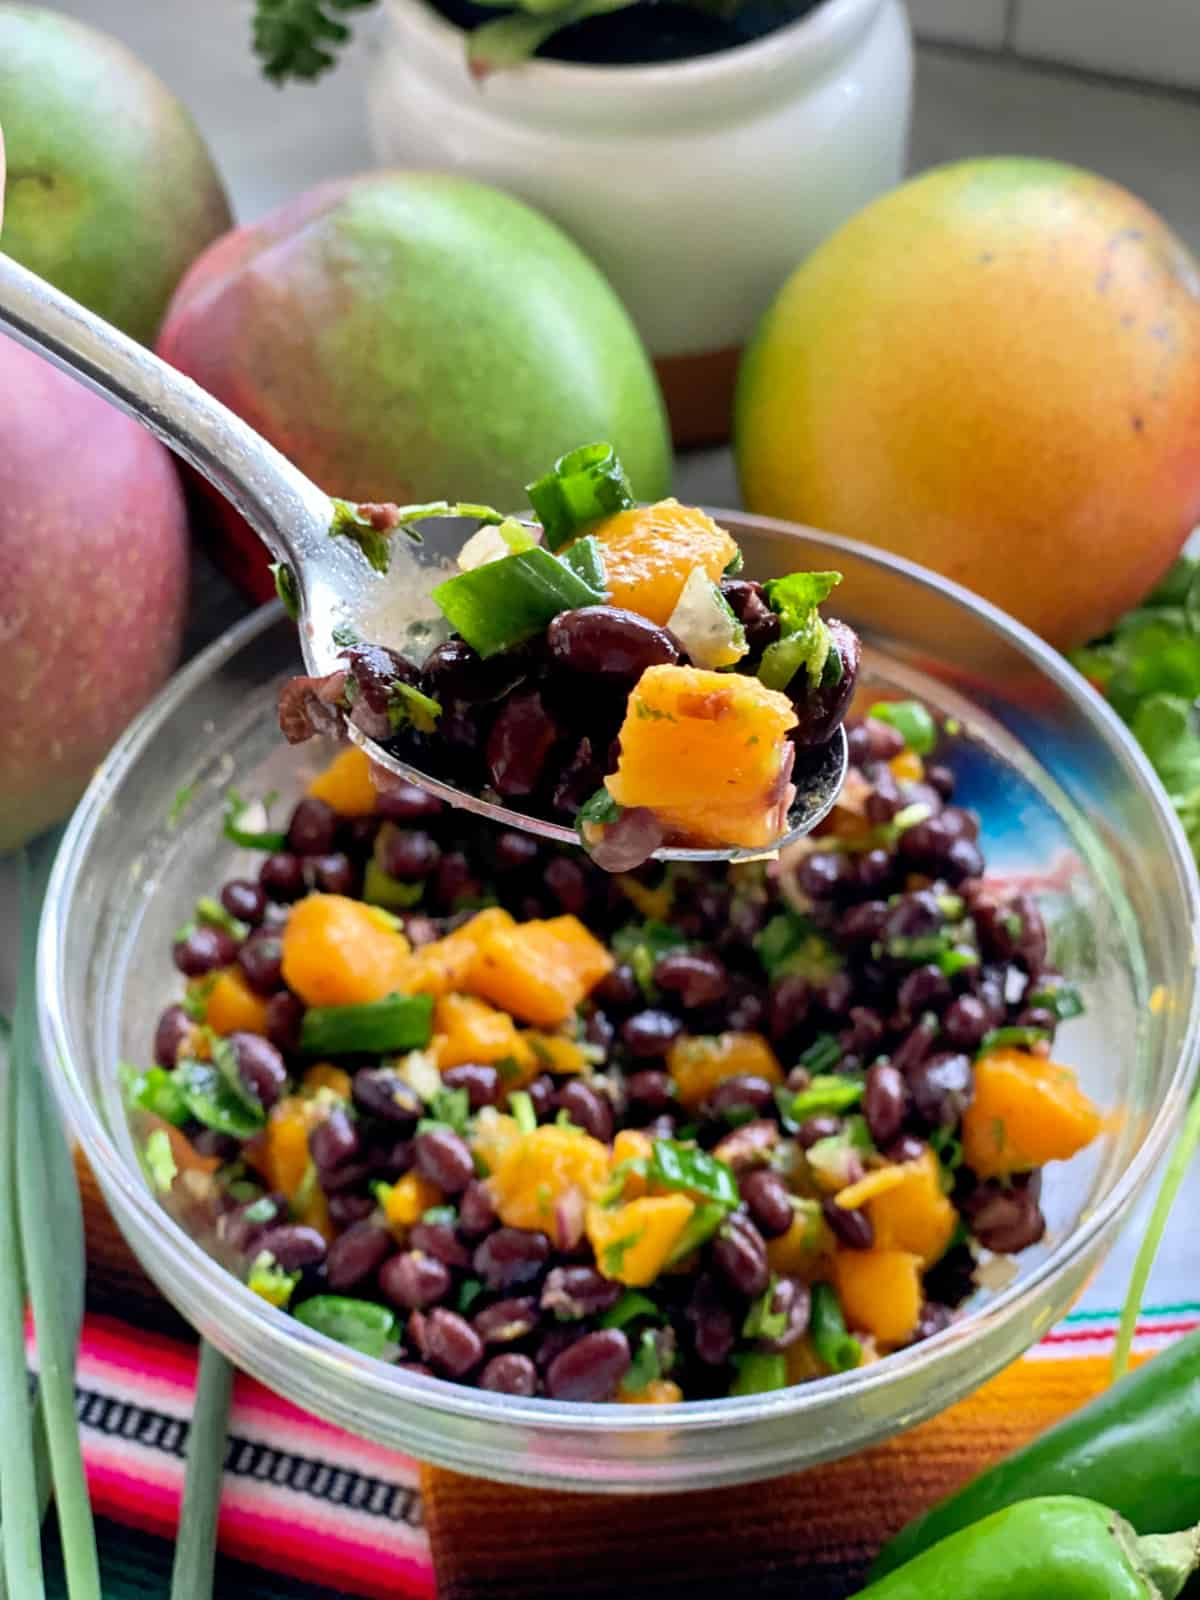 Silver spoon holding a scoop full of black beans, green onions, and mango over a bowl filled with black bean salad.